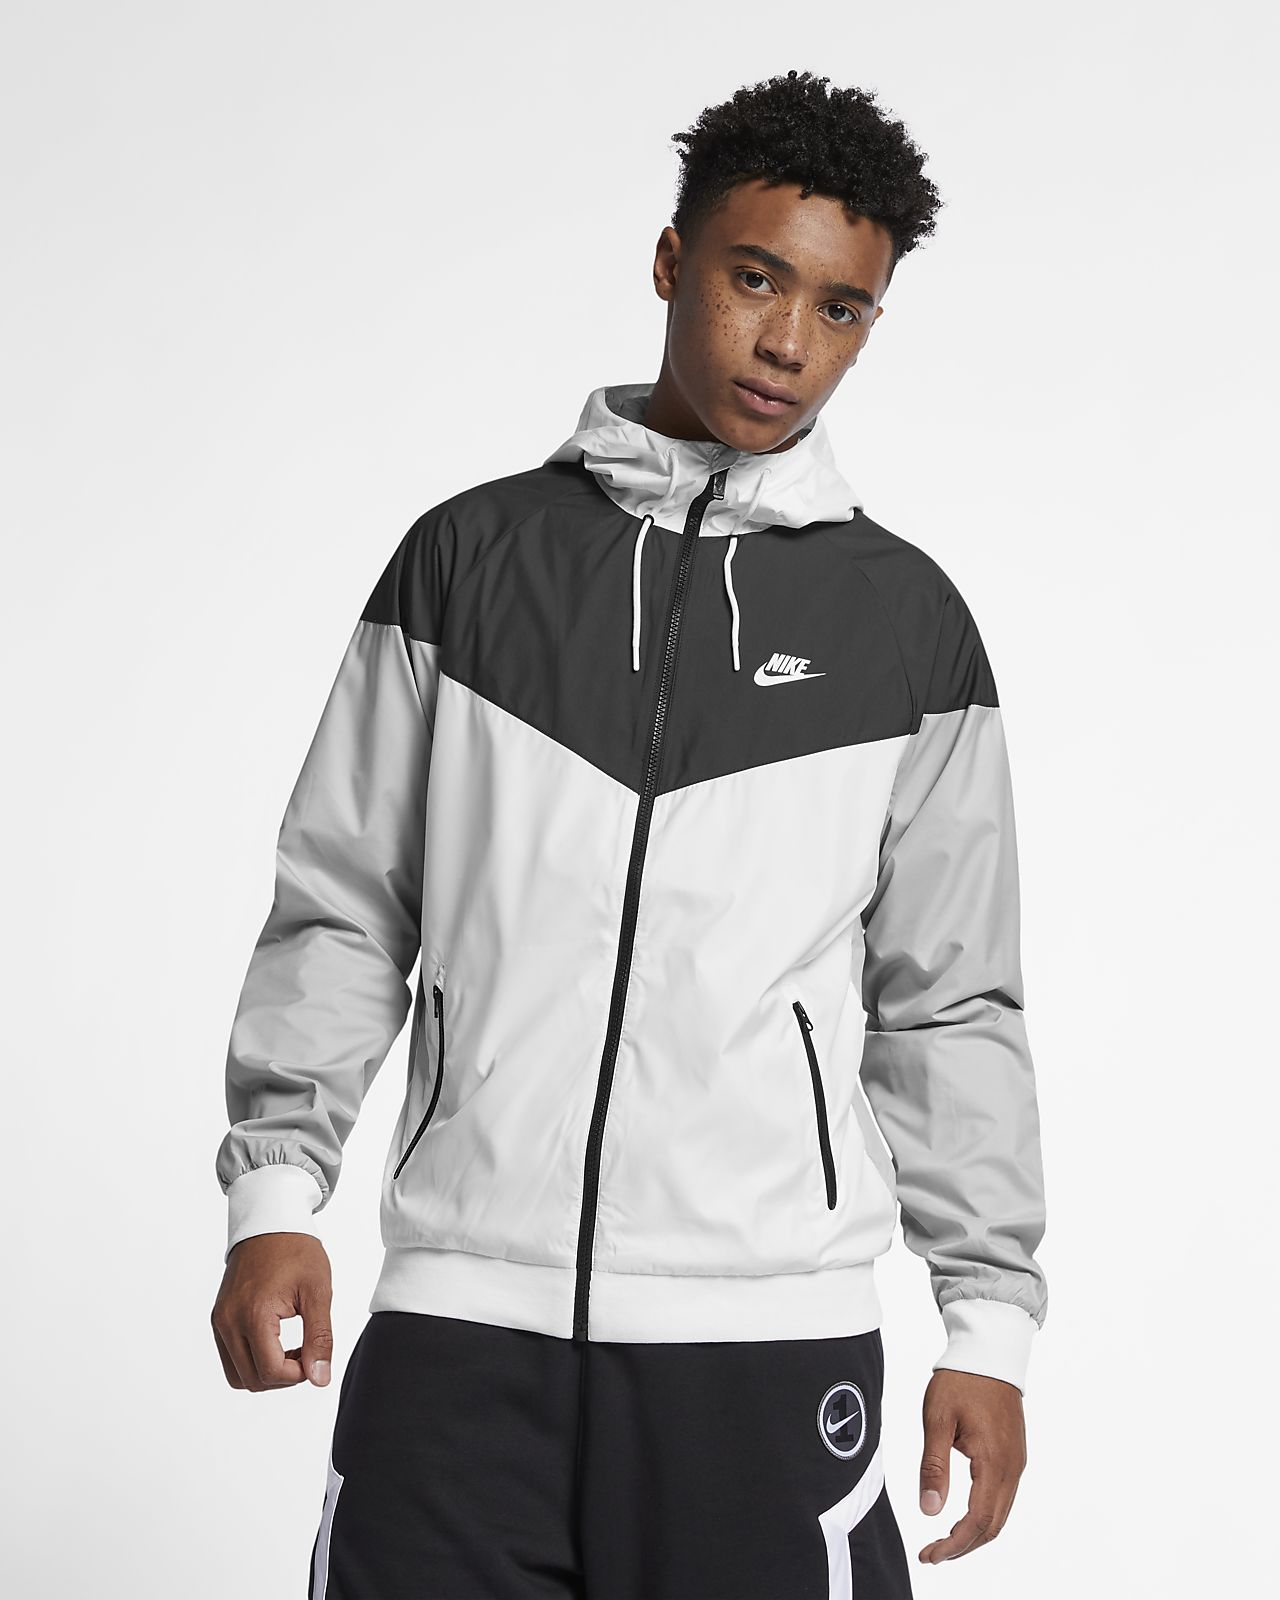 c95984a089 Nike Sportswear Windrunner Men s Jacket. Nike.com NZ